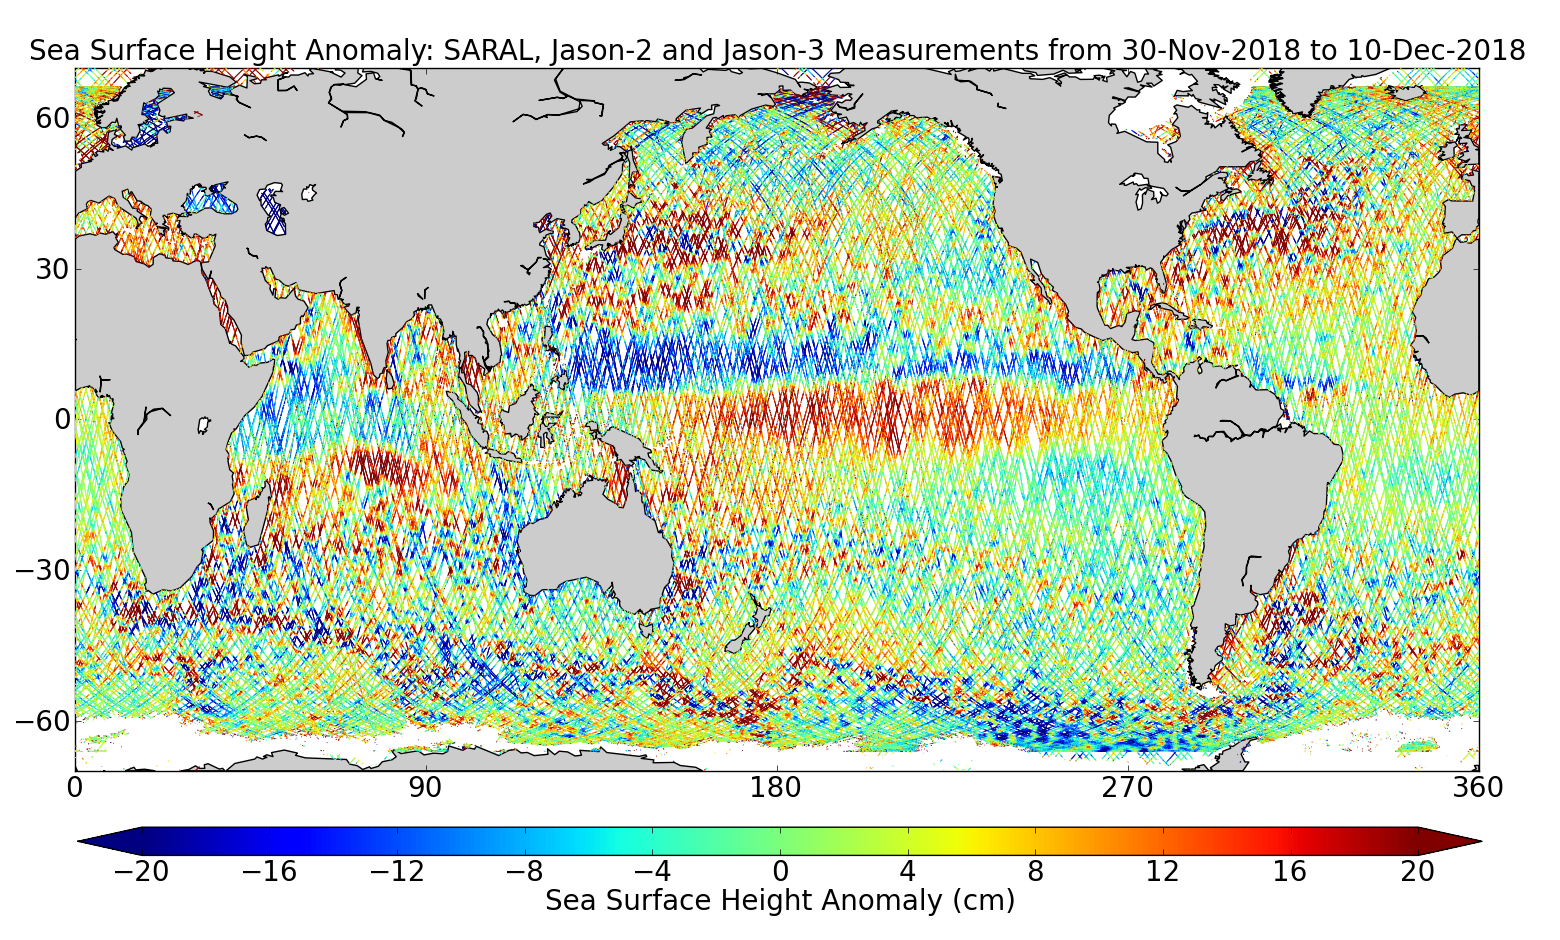 Sea Surface Height Anomaly: SARAL, Jason-2 and Jason-3 Measurements from 30-Nov-2018 to 10-Dec-2018